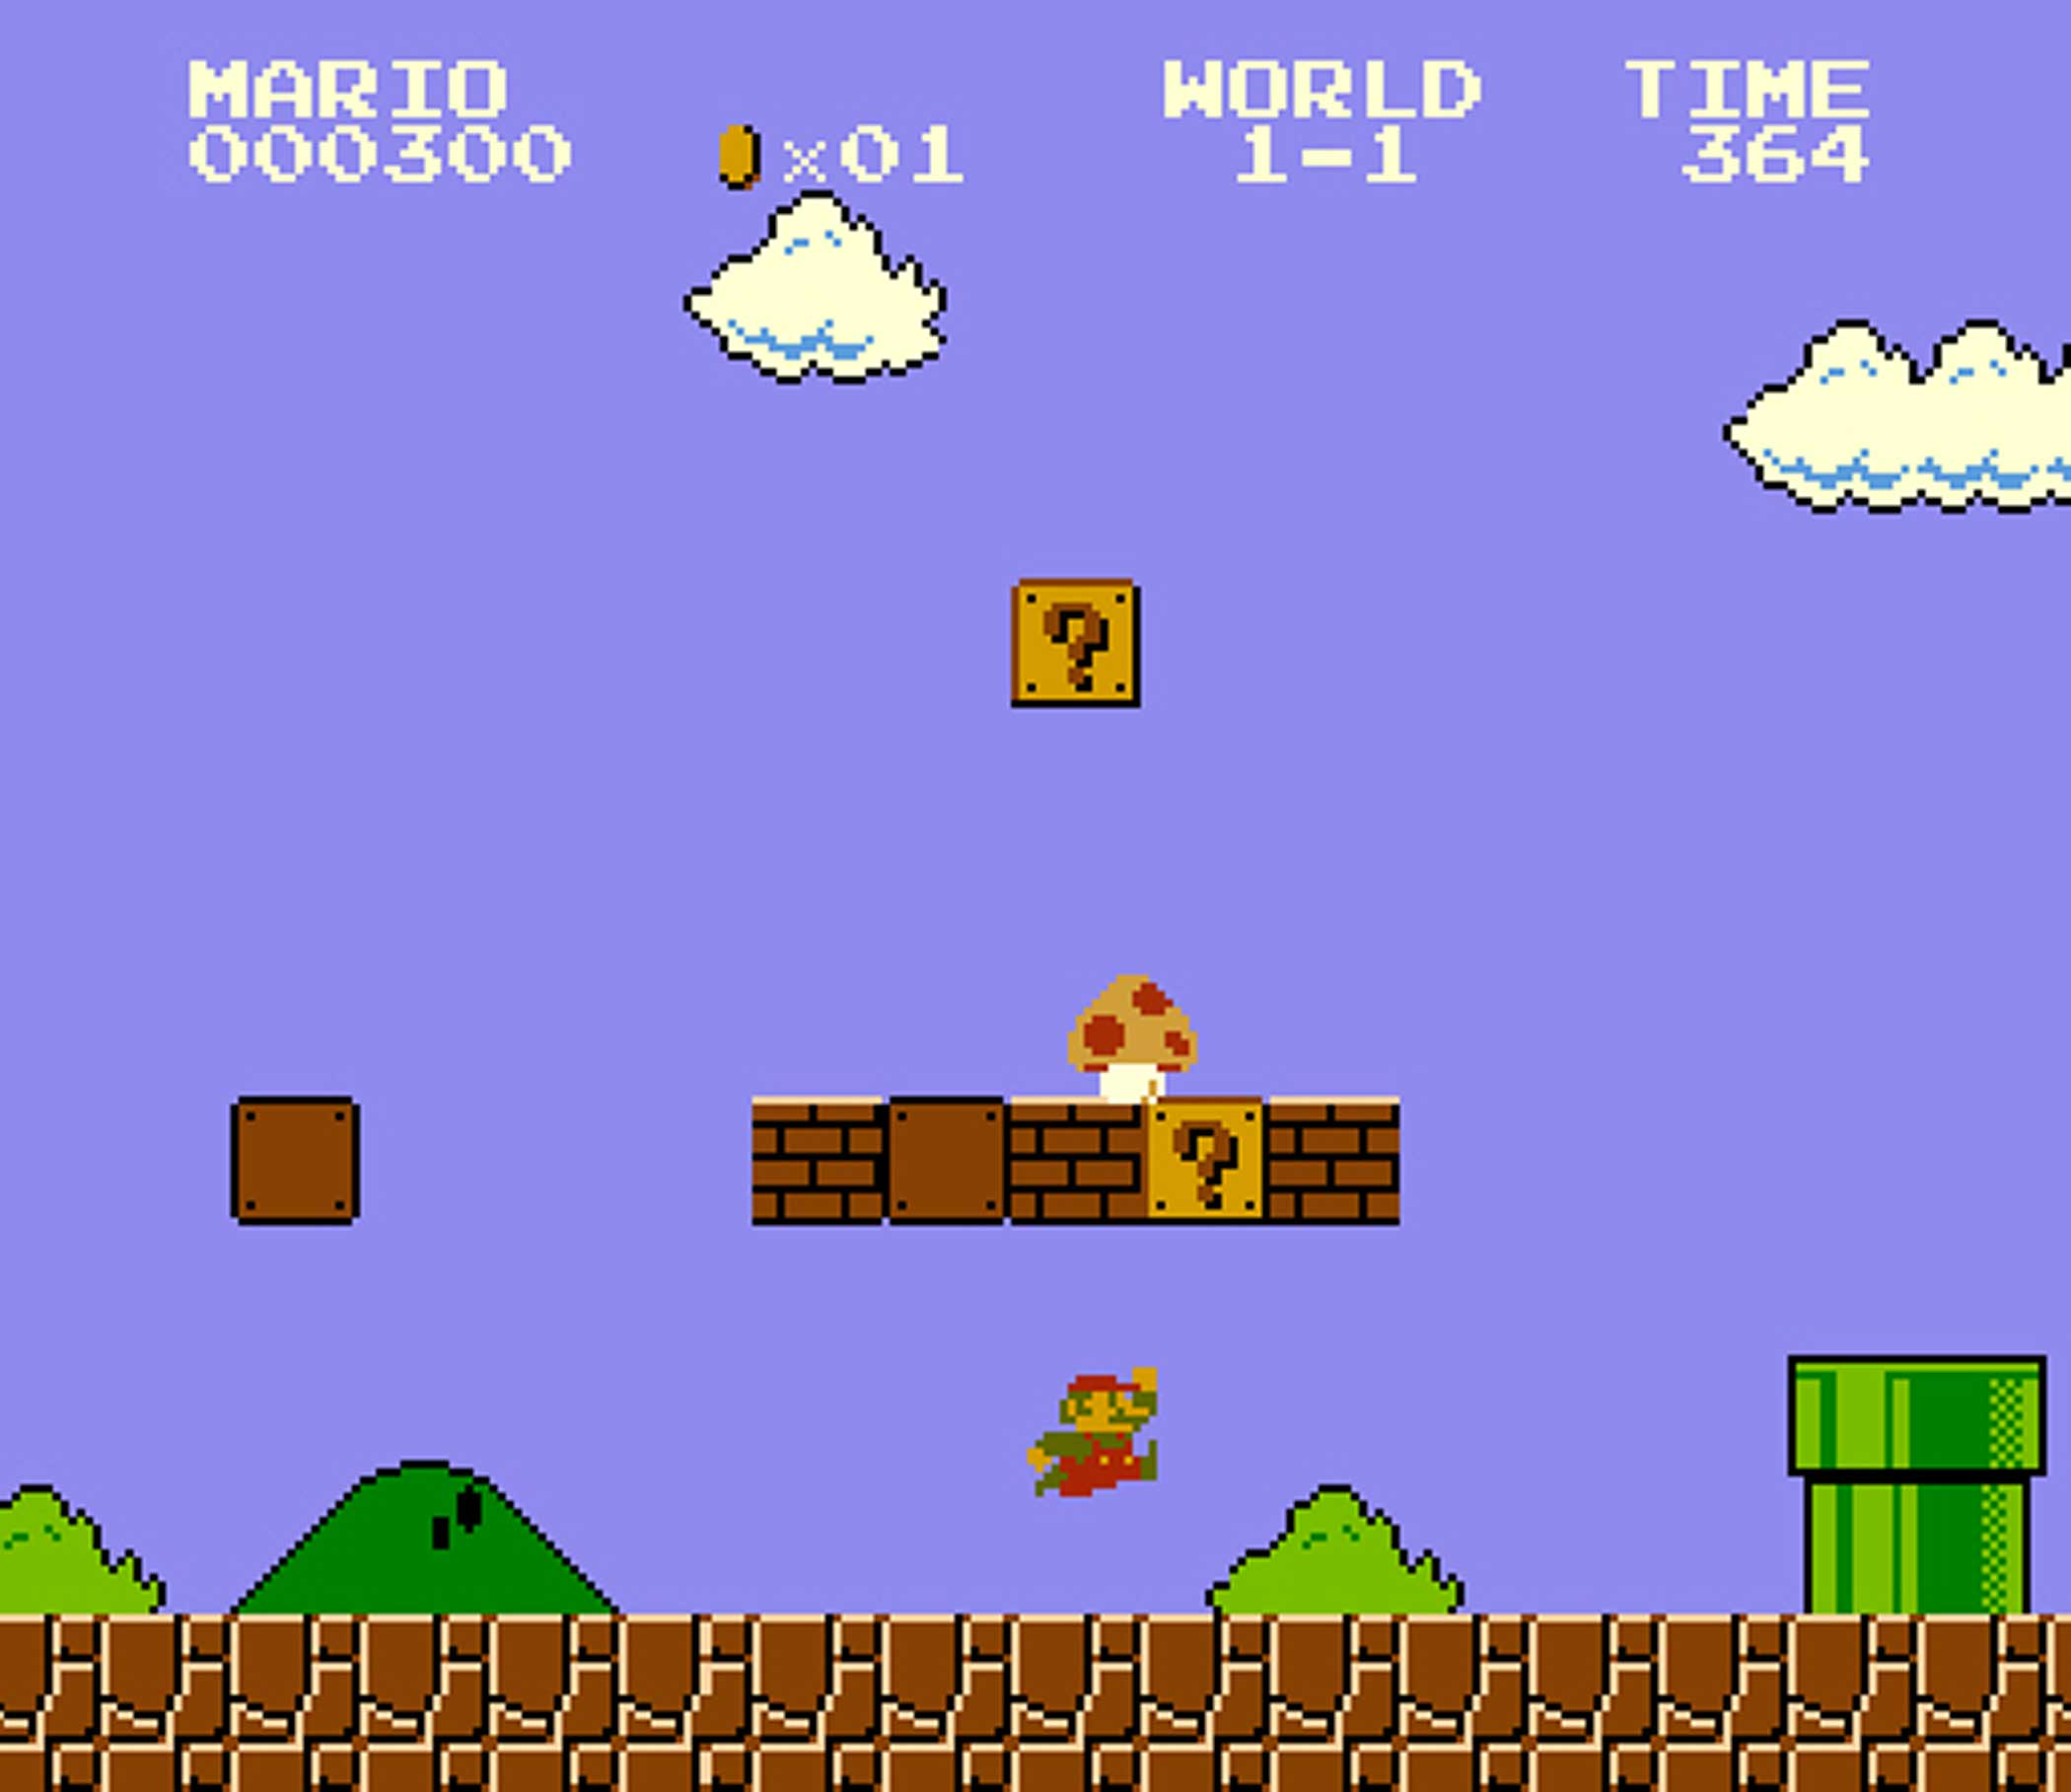 1985: Super Mario Bros.                                                              This is it, Nintendo luminary Shigeru Miyamoto's zany-looking masterpiece that launched a platforming revolution. It first appeared in Japanese and U.S. arcades in 1985, though Mario's debut was years earlier--in 1981's Donkey Kong, where he was known as  Jumpman.